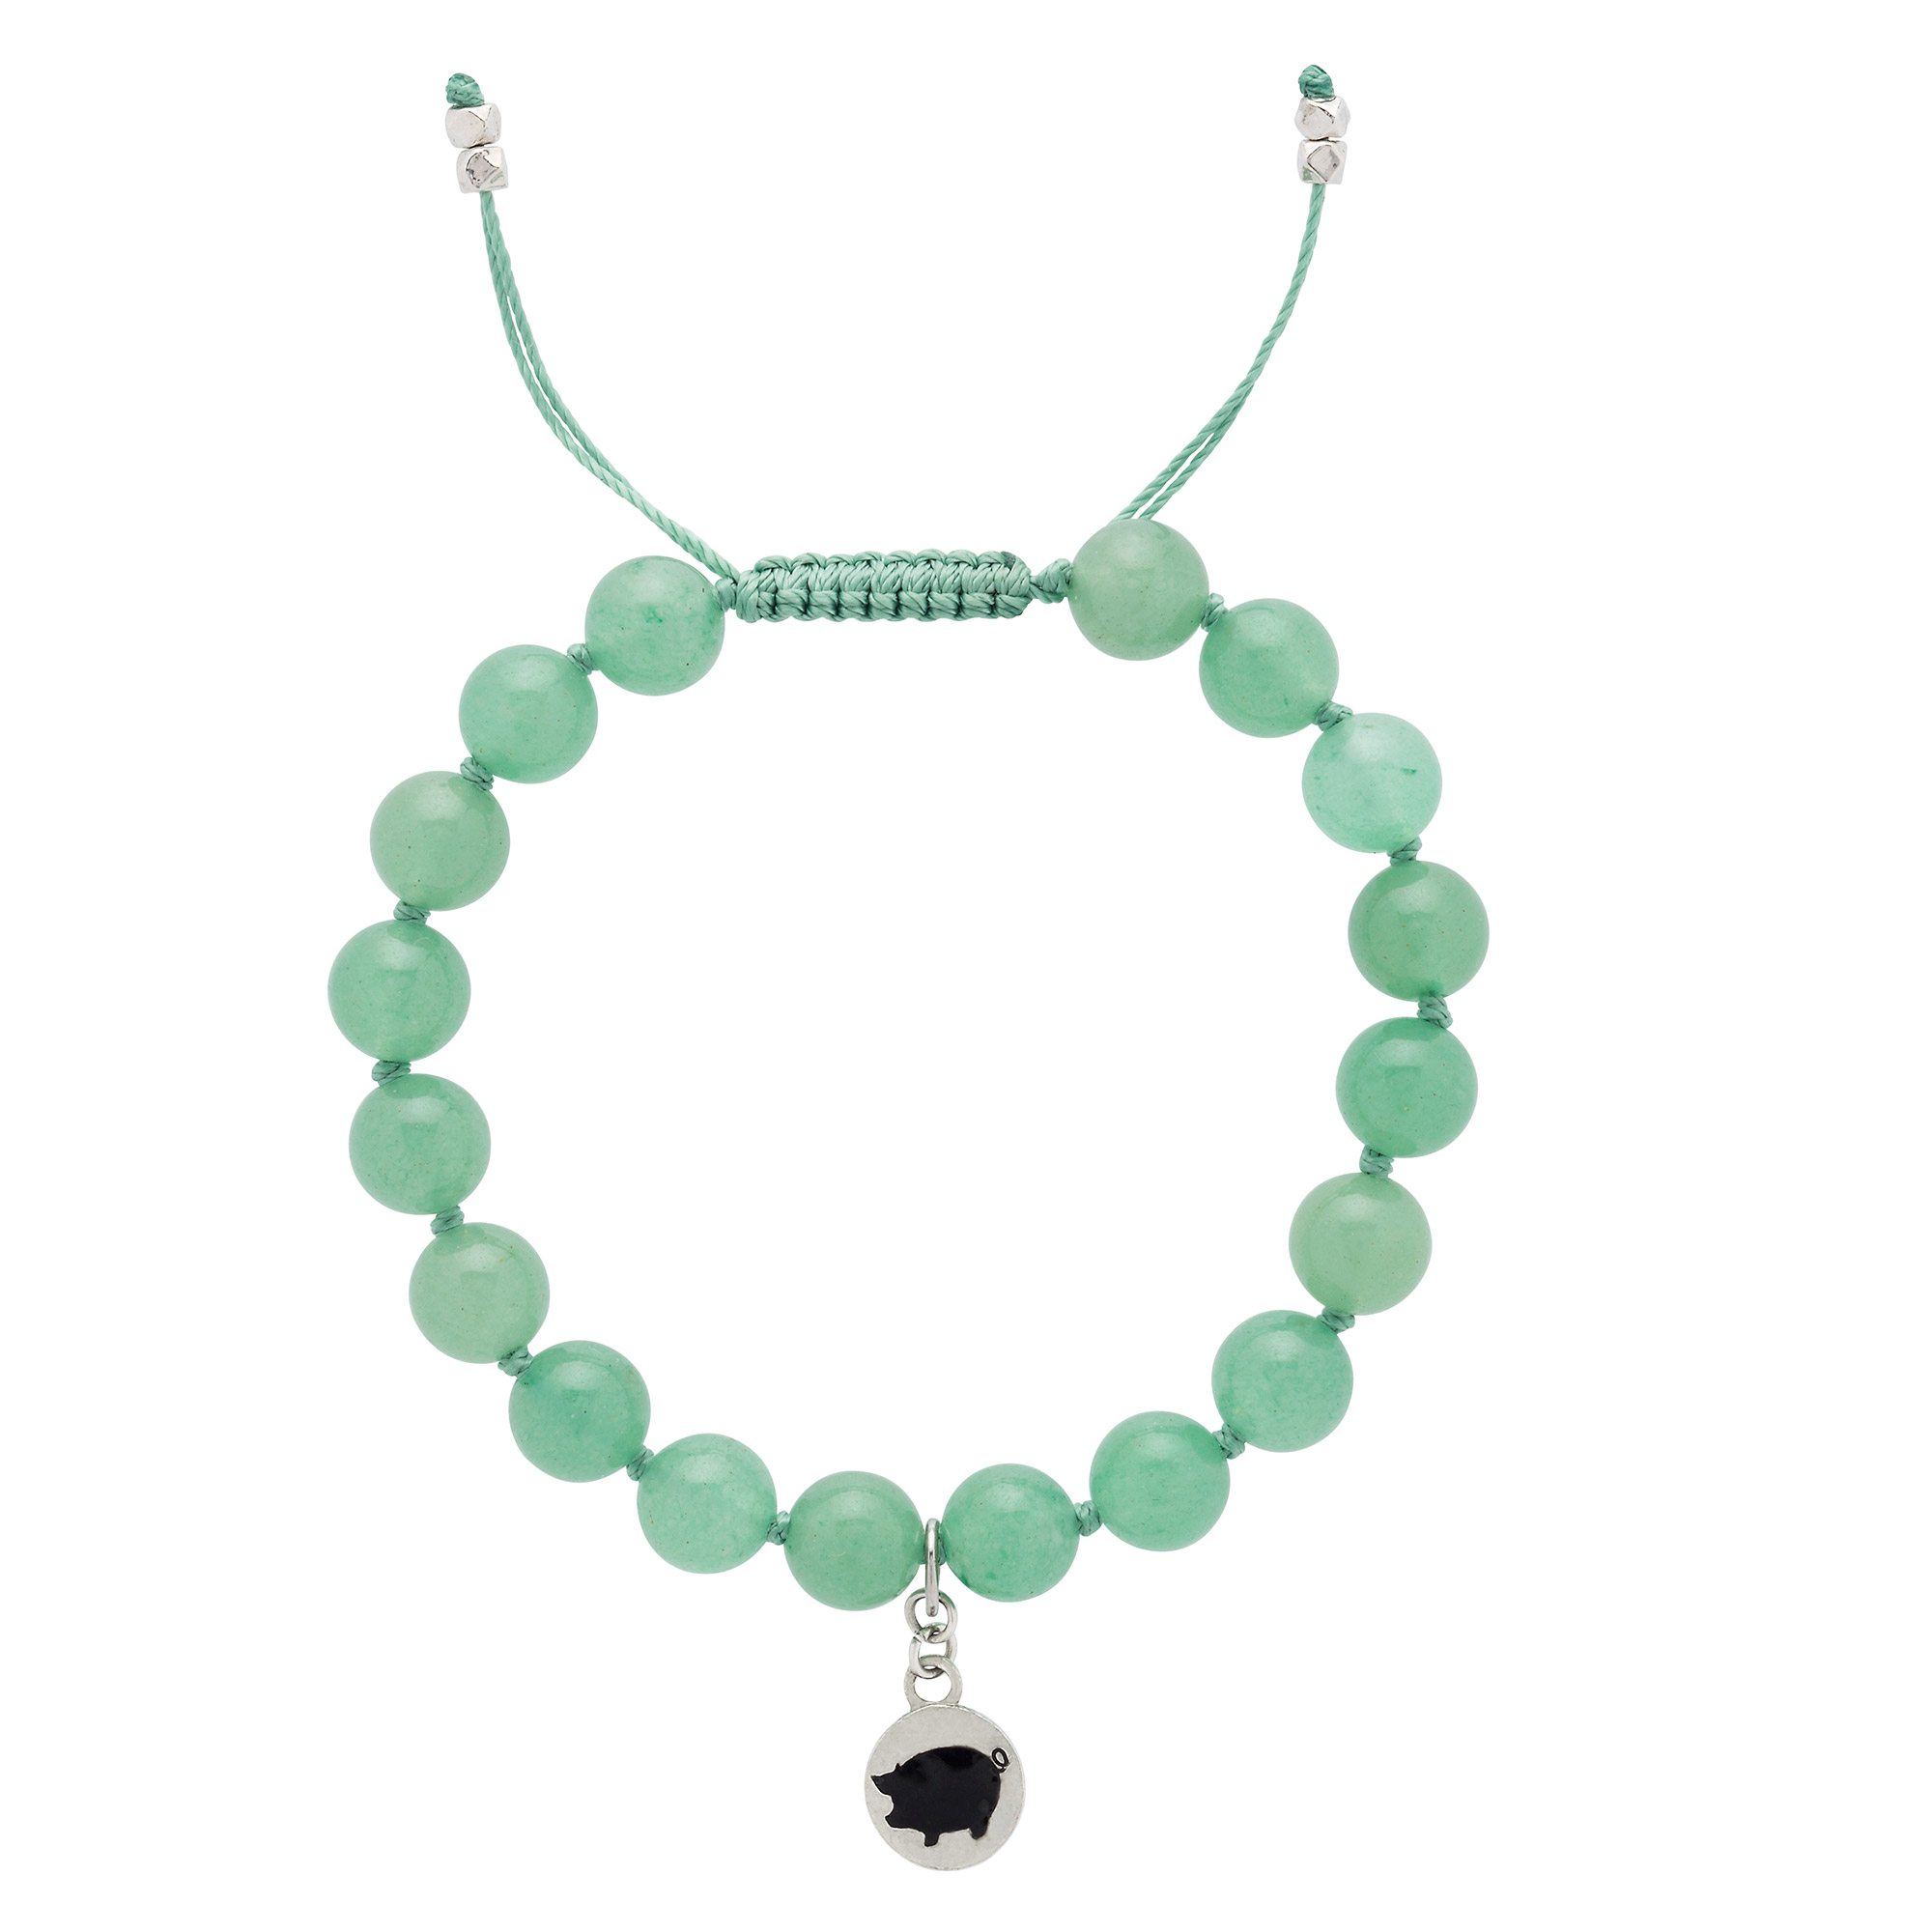 Featuring all-natural, semi-precious green aventurine gemstones, a dangling pig charm and a macrame slide closure.